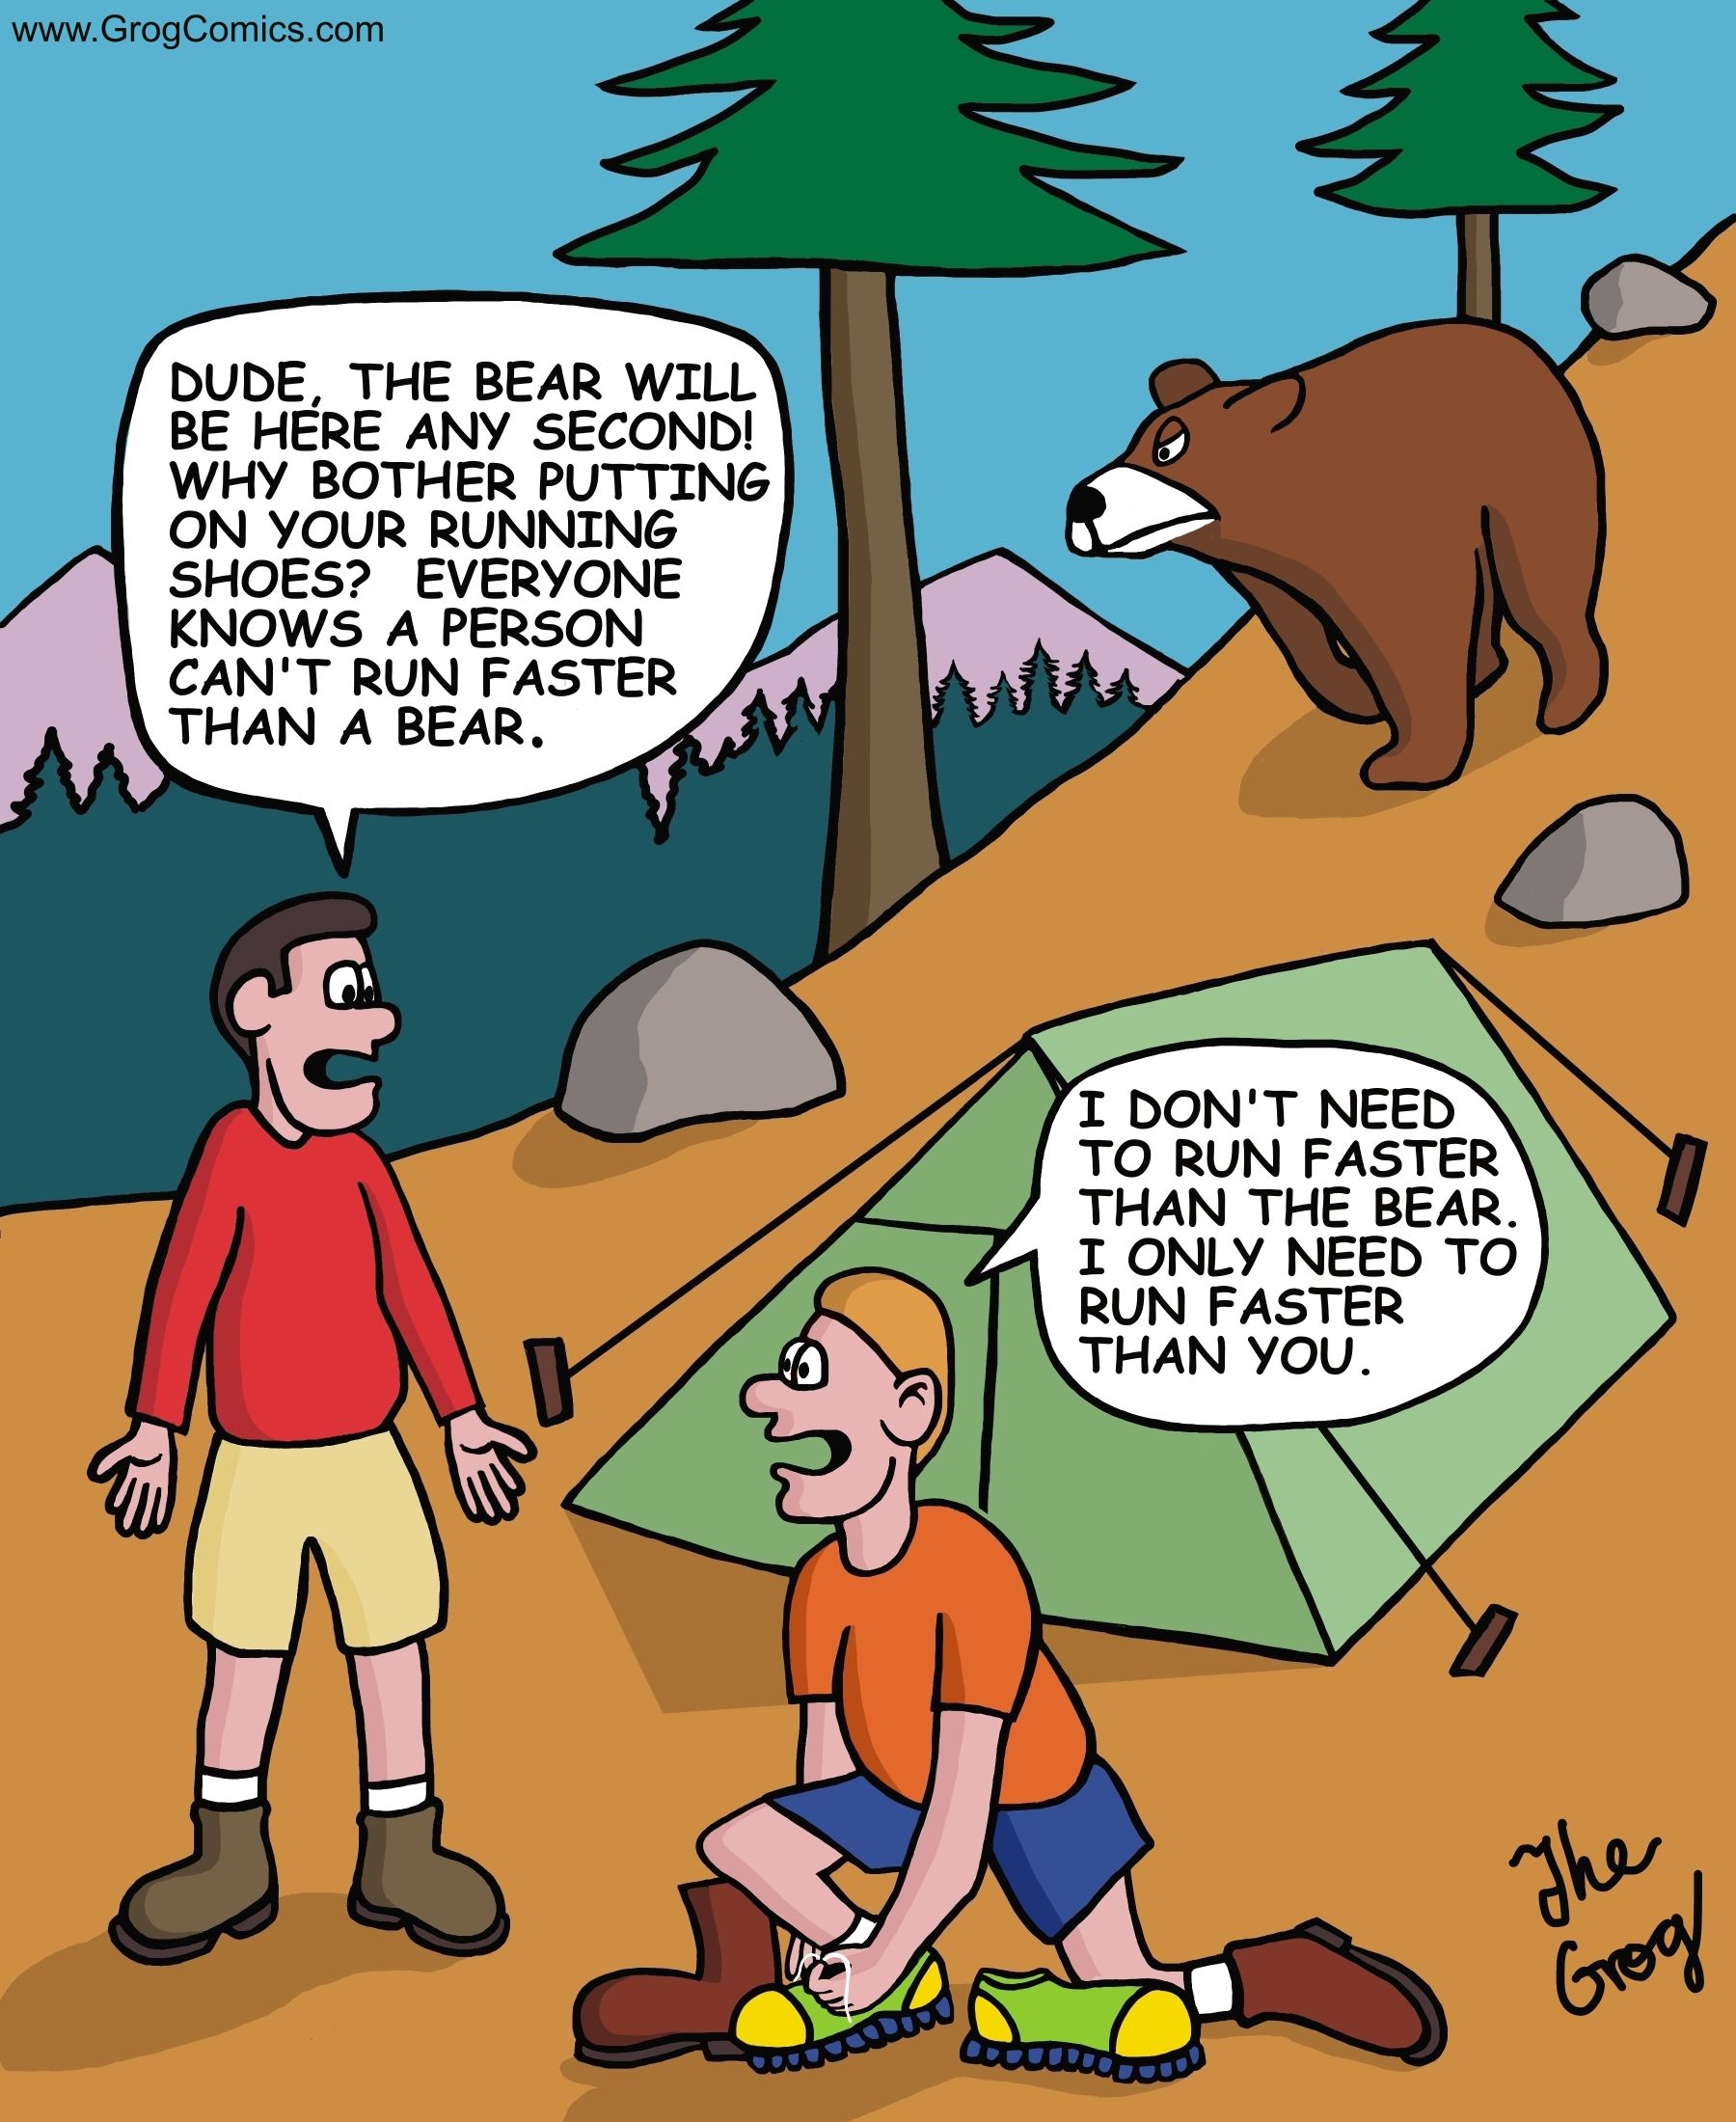 """Two guys are camping when a bear starts approaching their camp site. Before they start running, why guy stops to put on his running shoes. The other guy says, """"Dude, the bear will be here any second! Why bother putting on your running shoes? Everyone knows a person can't run faster than a bear"""". """"I don't need to run faster than the bear"""", says the guy as he changes into his best sneakers. """"I only have to run faster than you."""""""